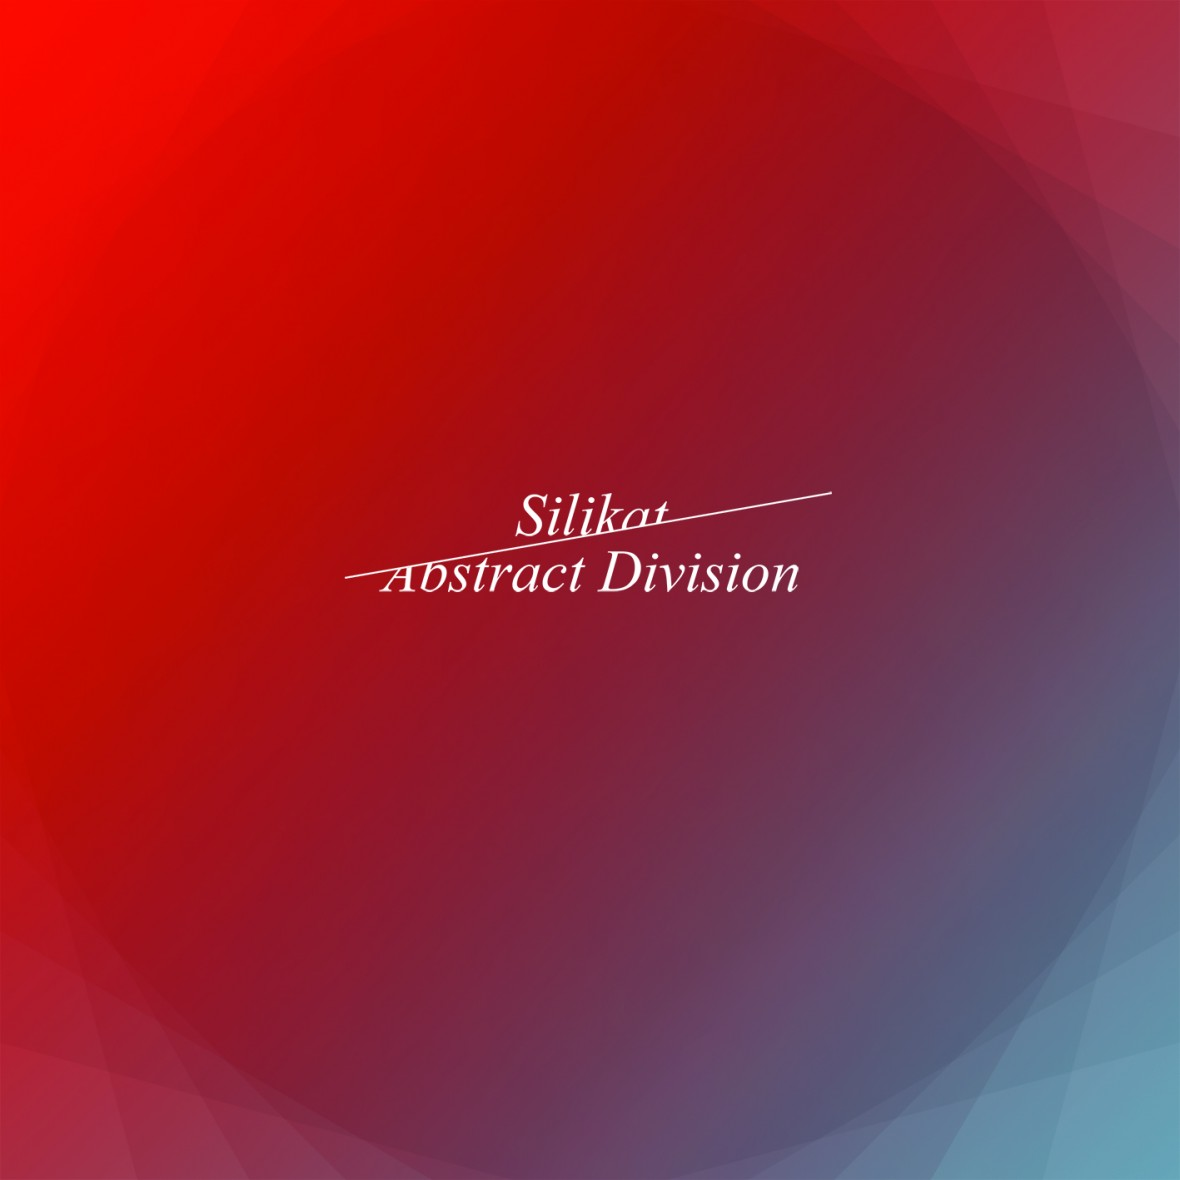 Cover front Silikat Abstract Division